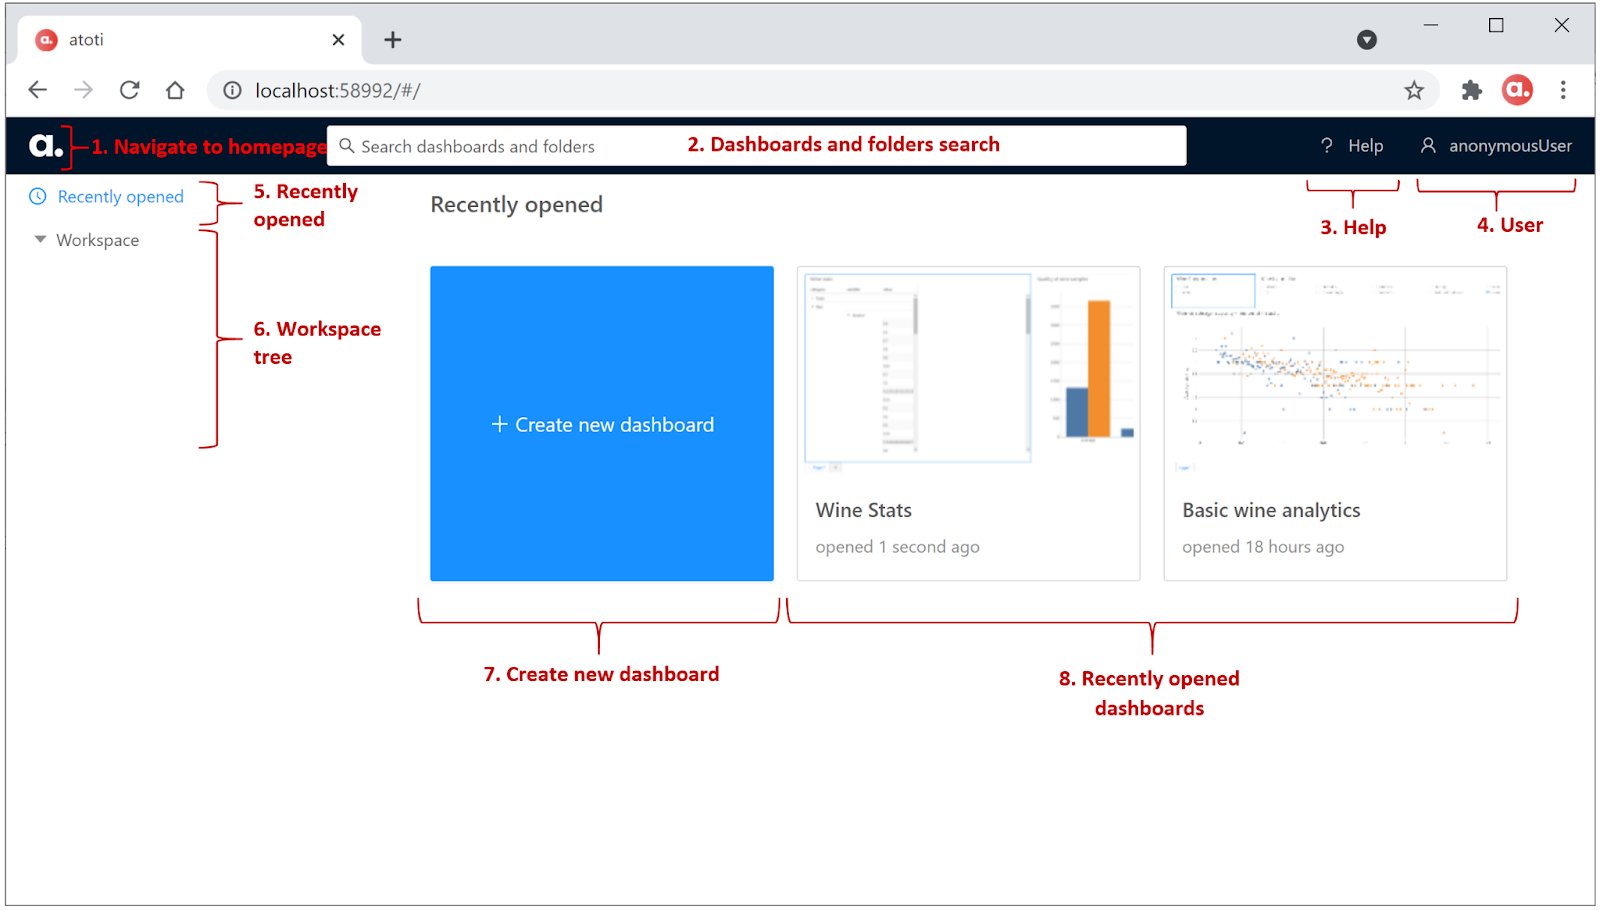 Layout of the landing page for atoti web application